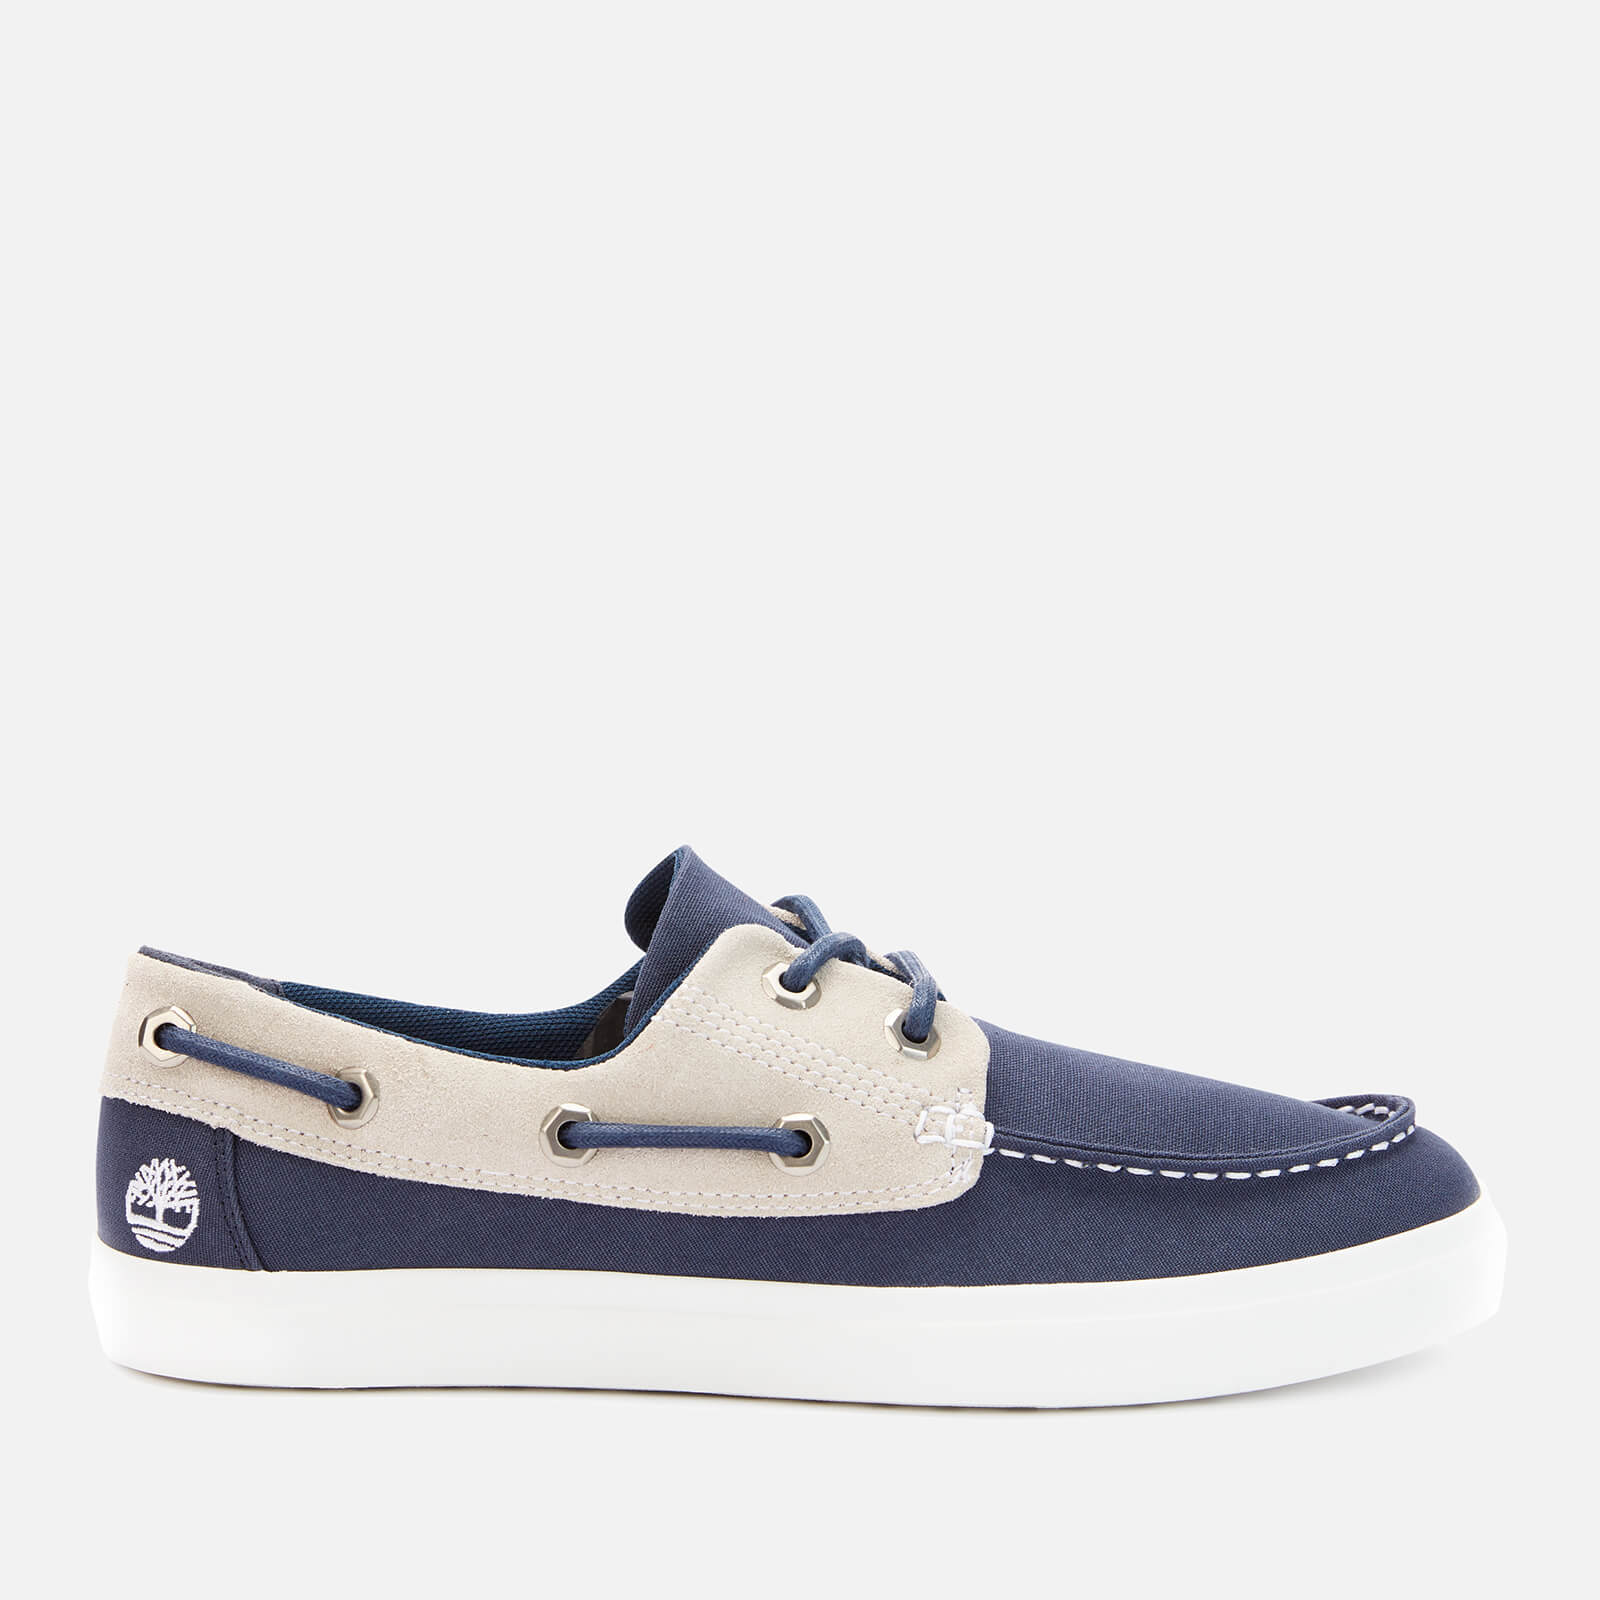 Timberland Men's Union Wharf Canvas 2 Eye Boat Shoes Navy